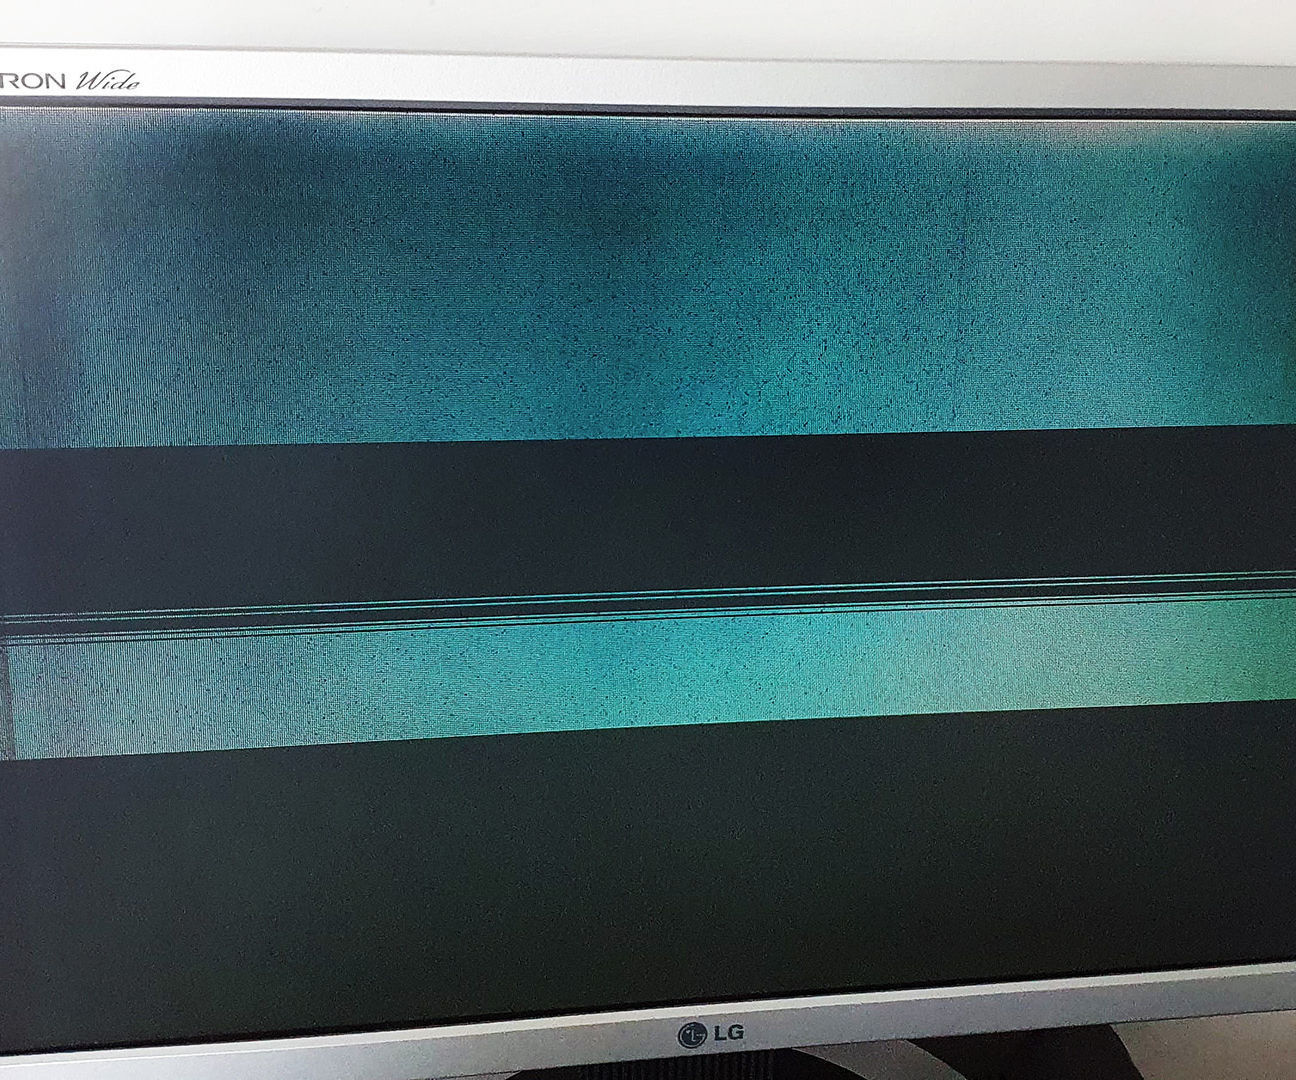 Make Lightscreen From Old LCD Display